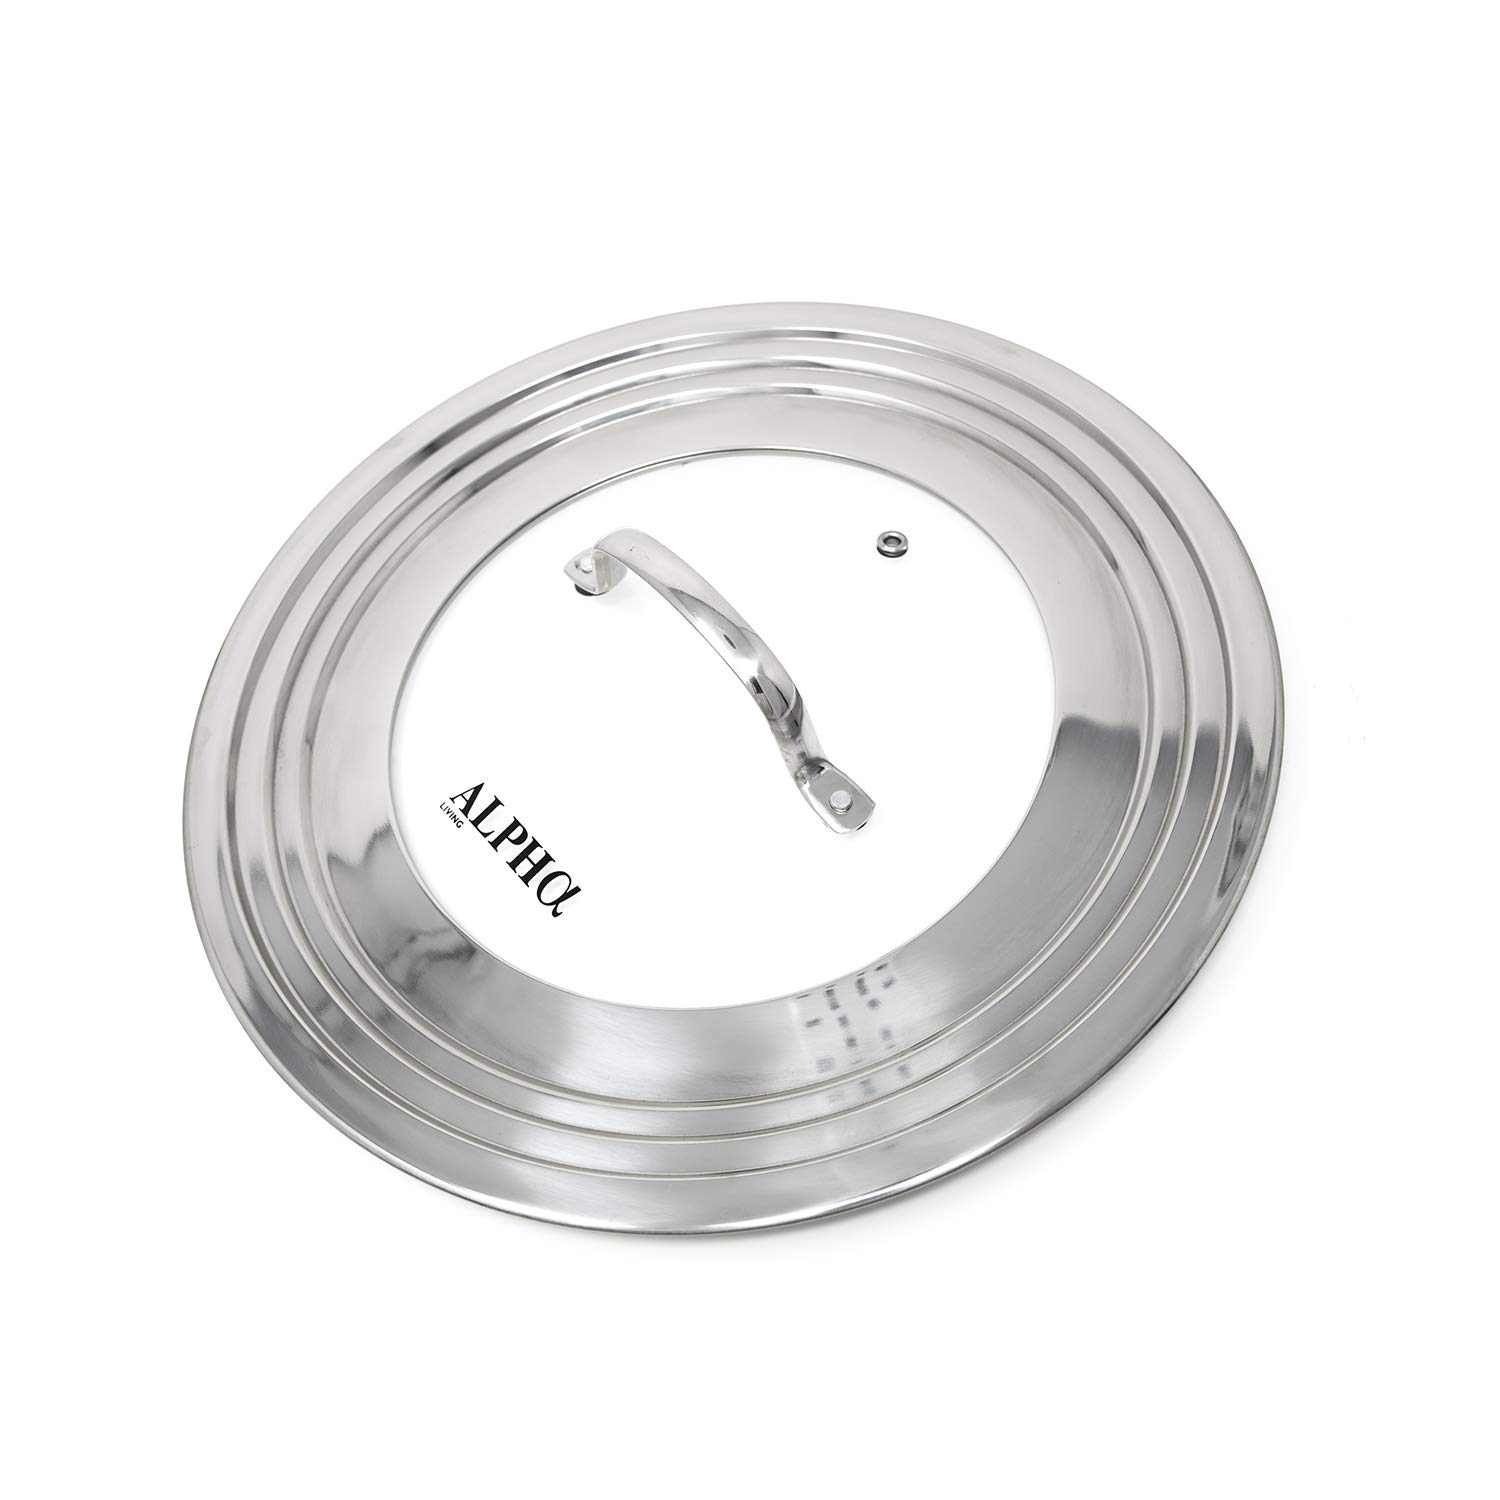 Alpha Living 60015 7'' to 12'' High Grade Stainless Steel and Glass Universal, Fits All Pots, Replacement Frying Pan Cover and Skillet Lids, 7-12 inches